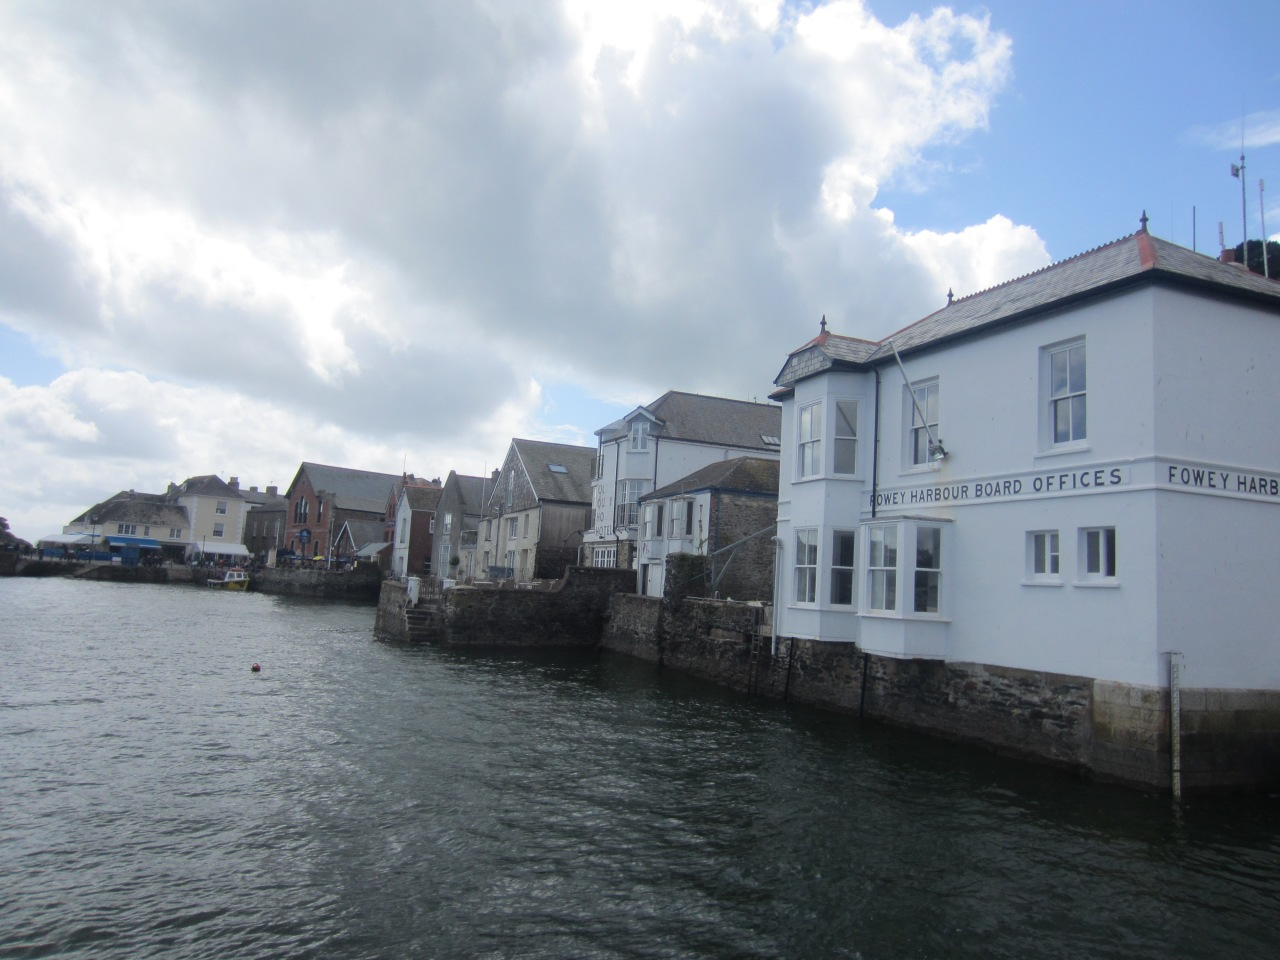 Fowey in photos